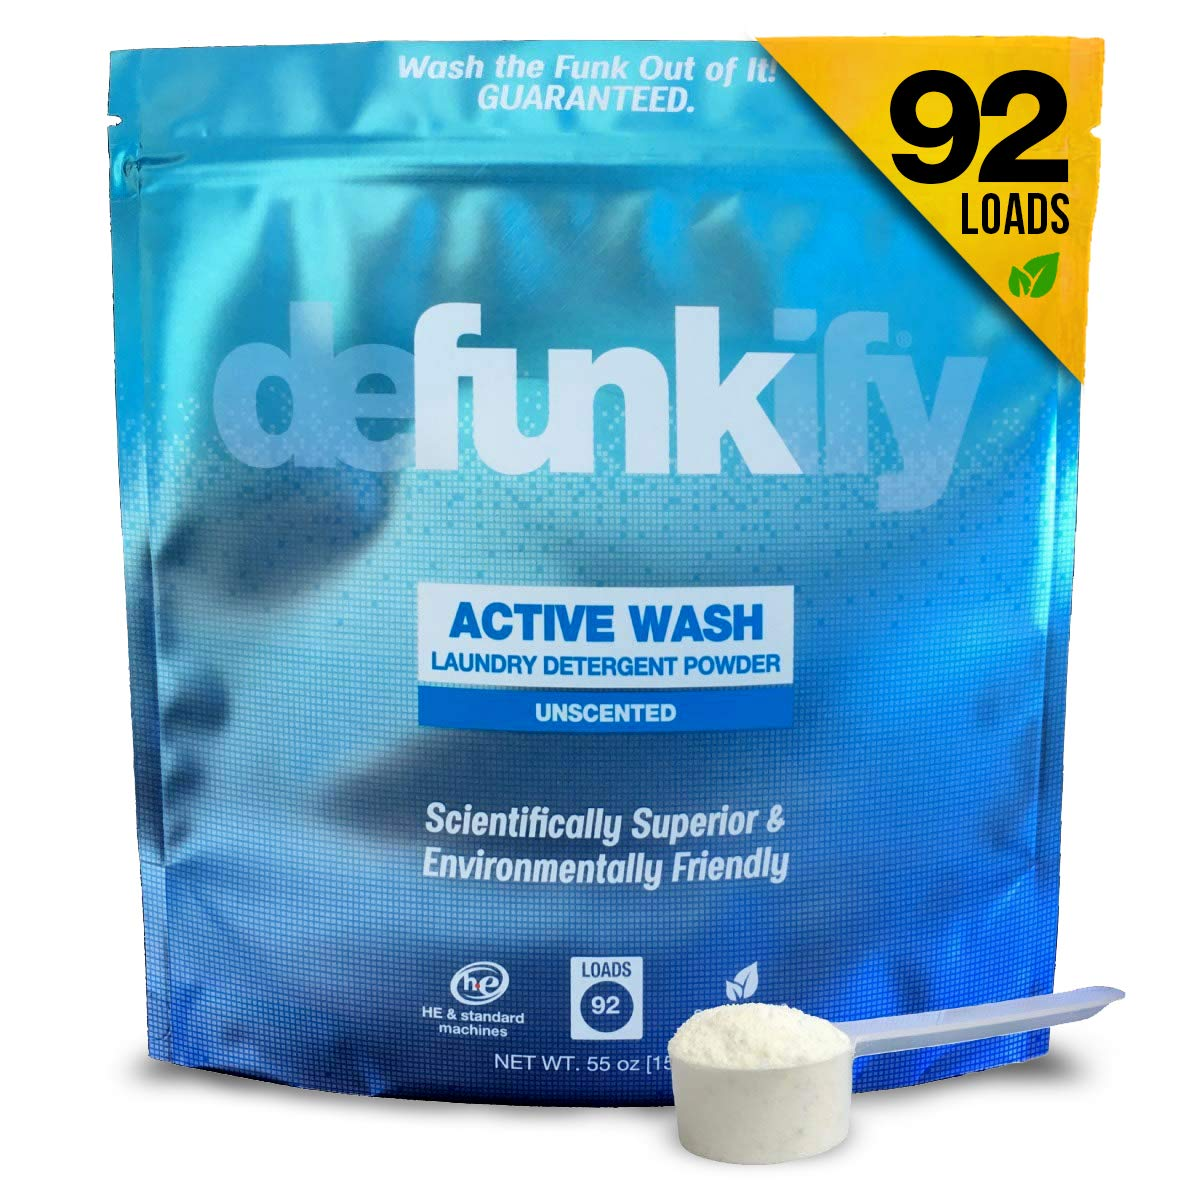 Defunkify Active Wash Laundry Detergent Powder, All Natural, Plant-Based, Enzyme Cleaner, Active Wear Odor and Stain Remover, Free and Clear, Unscented and Safe for All Ages - 55 oz (92 Loads) by DEFUNKIFY